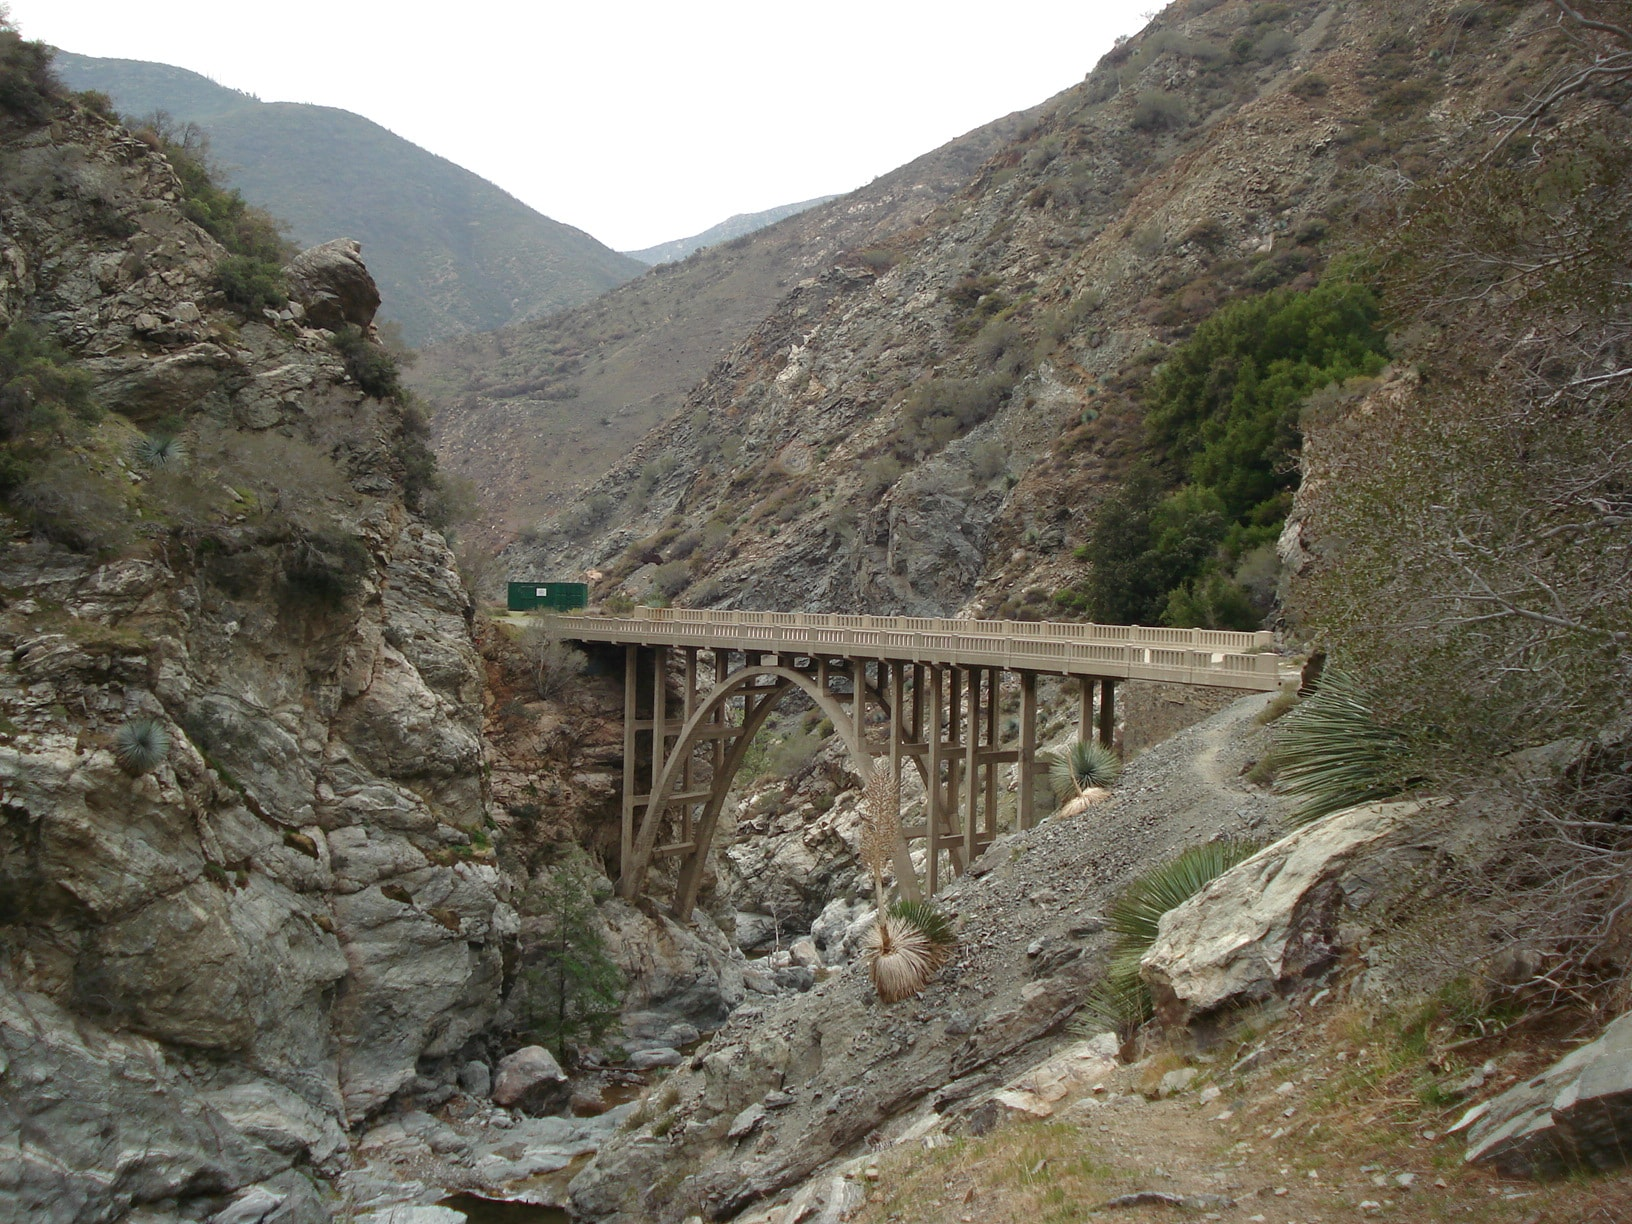 Bridge to Nowhere Trail in the San Gabriel Mountains